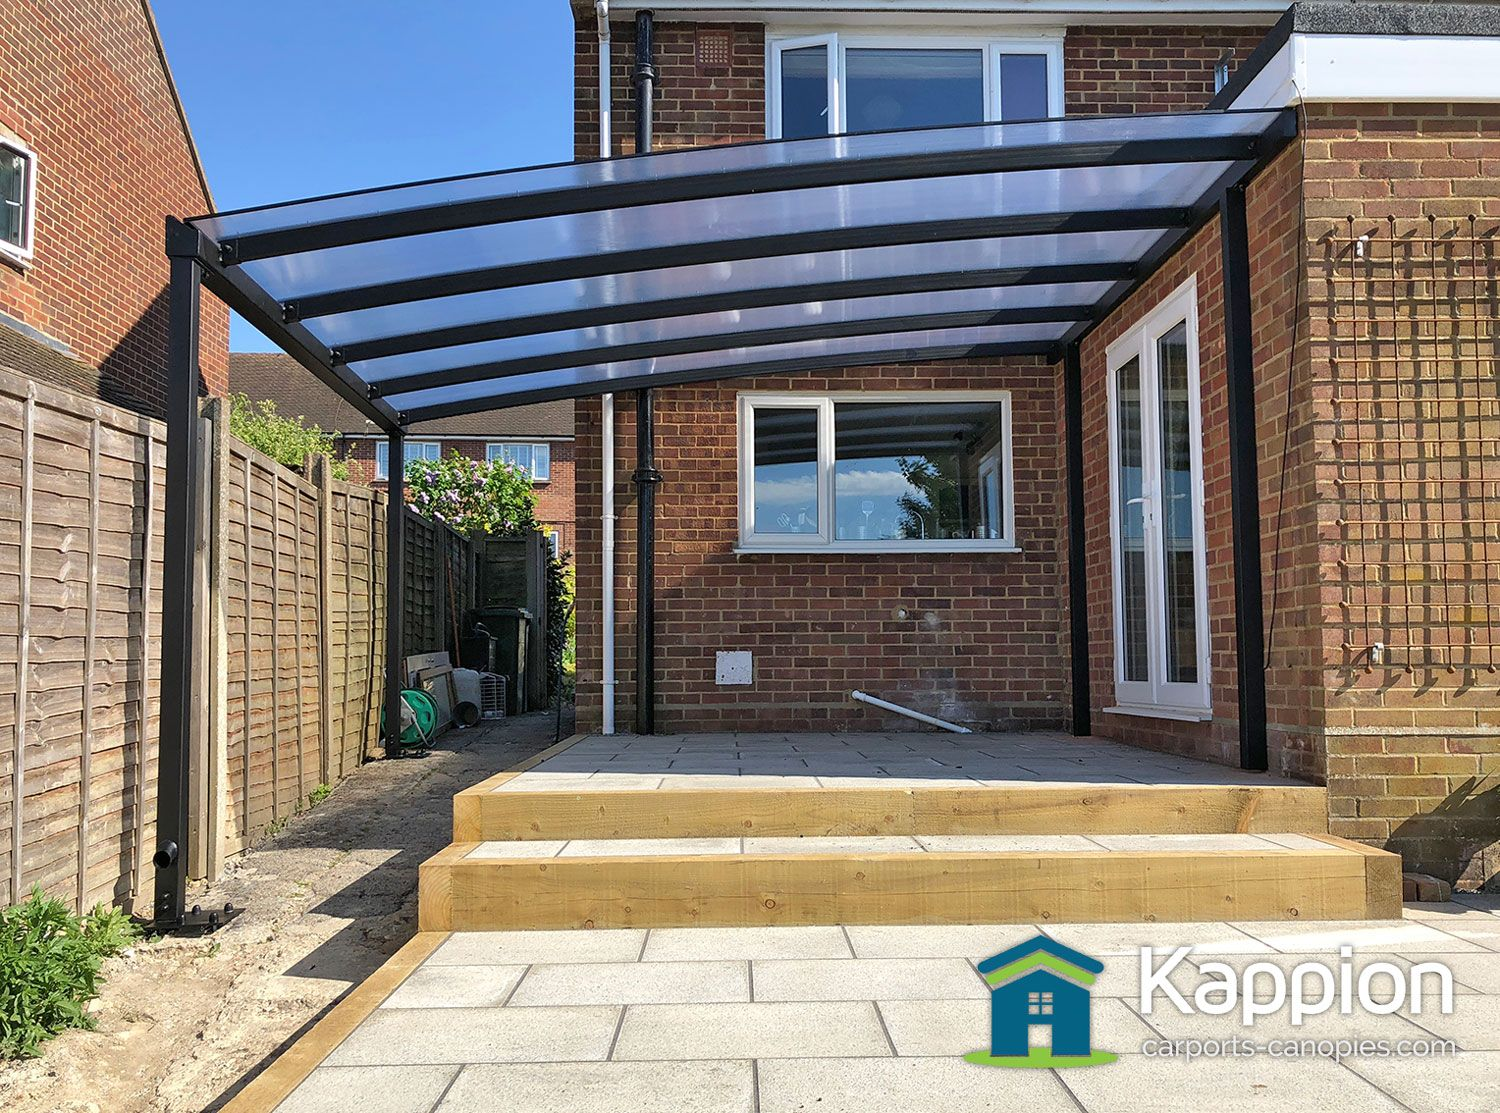 Renovation of a patio ready for summer! Canopy fully